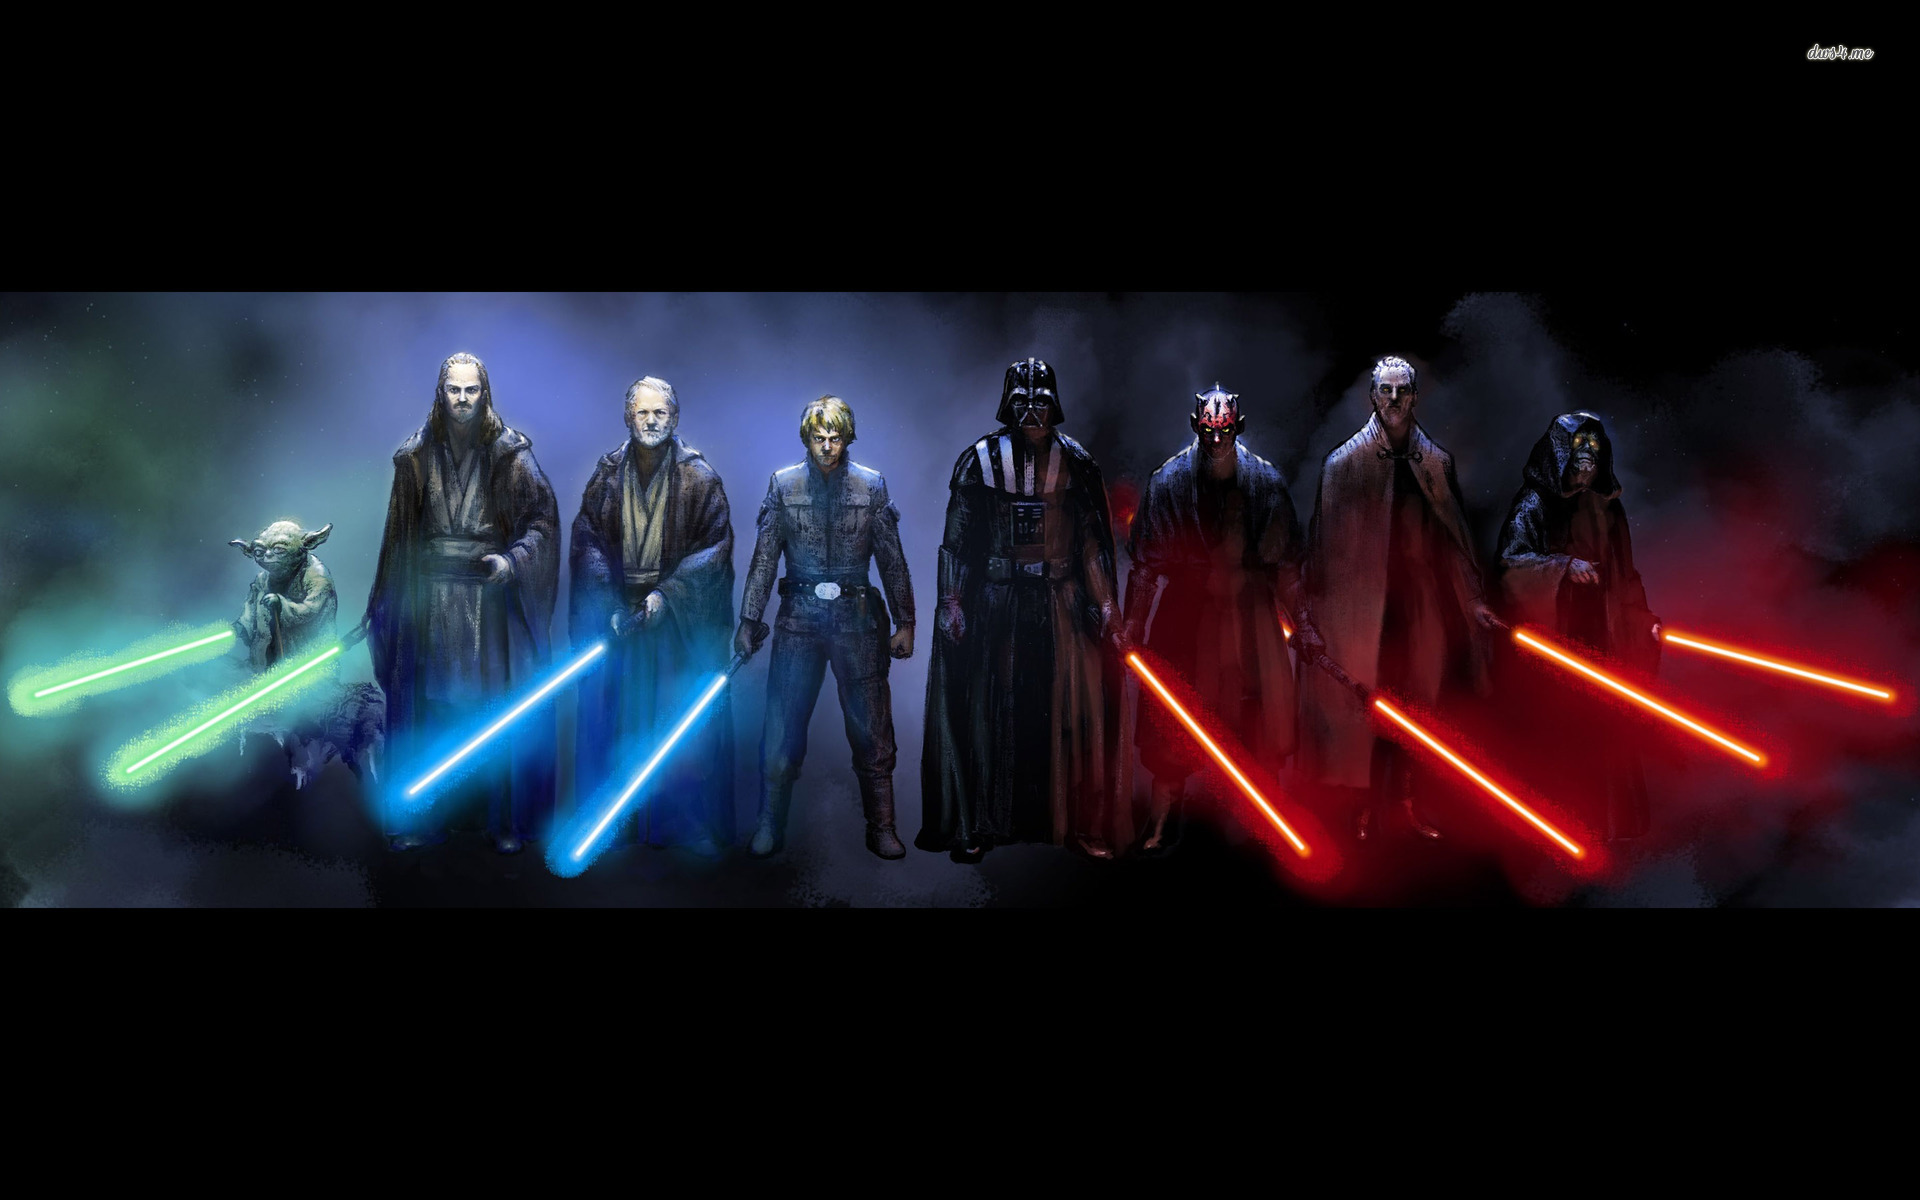 Jedi and Sith   Star Wars wallpaper   Movie wallpapers   17310 1920x1200